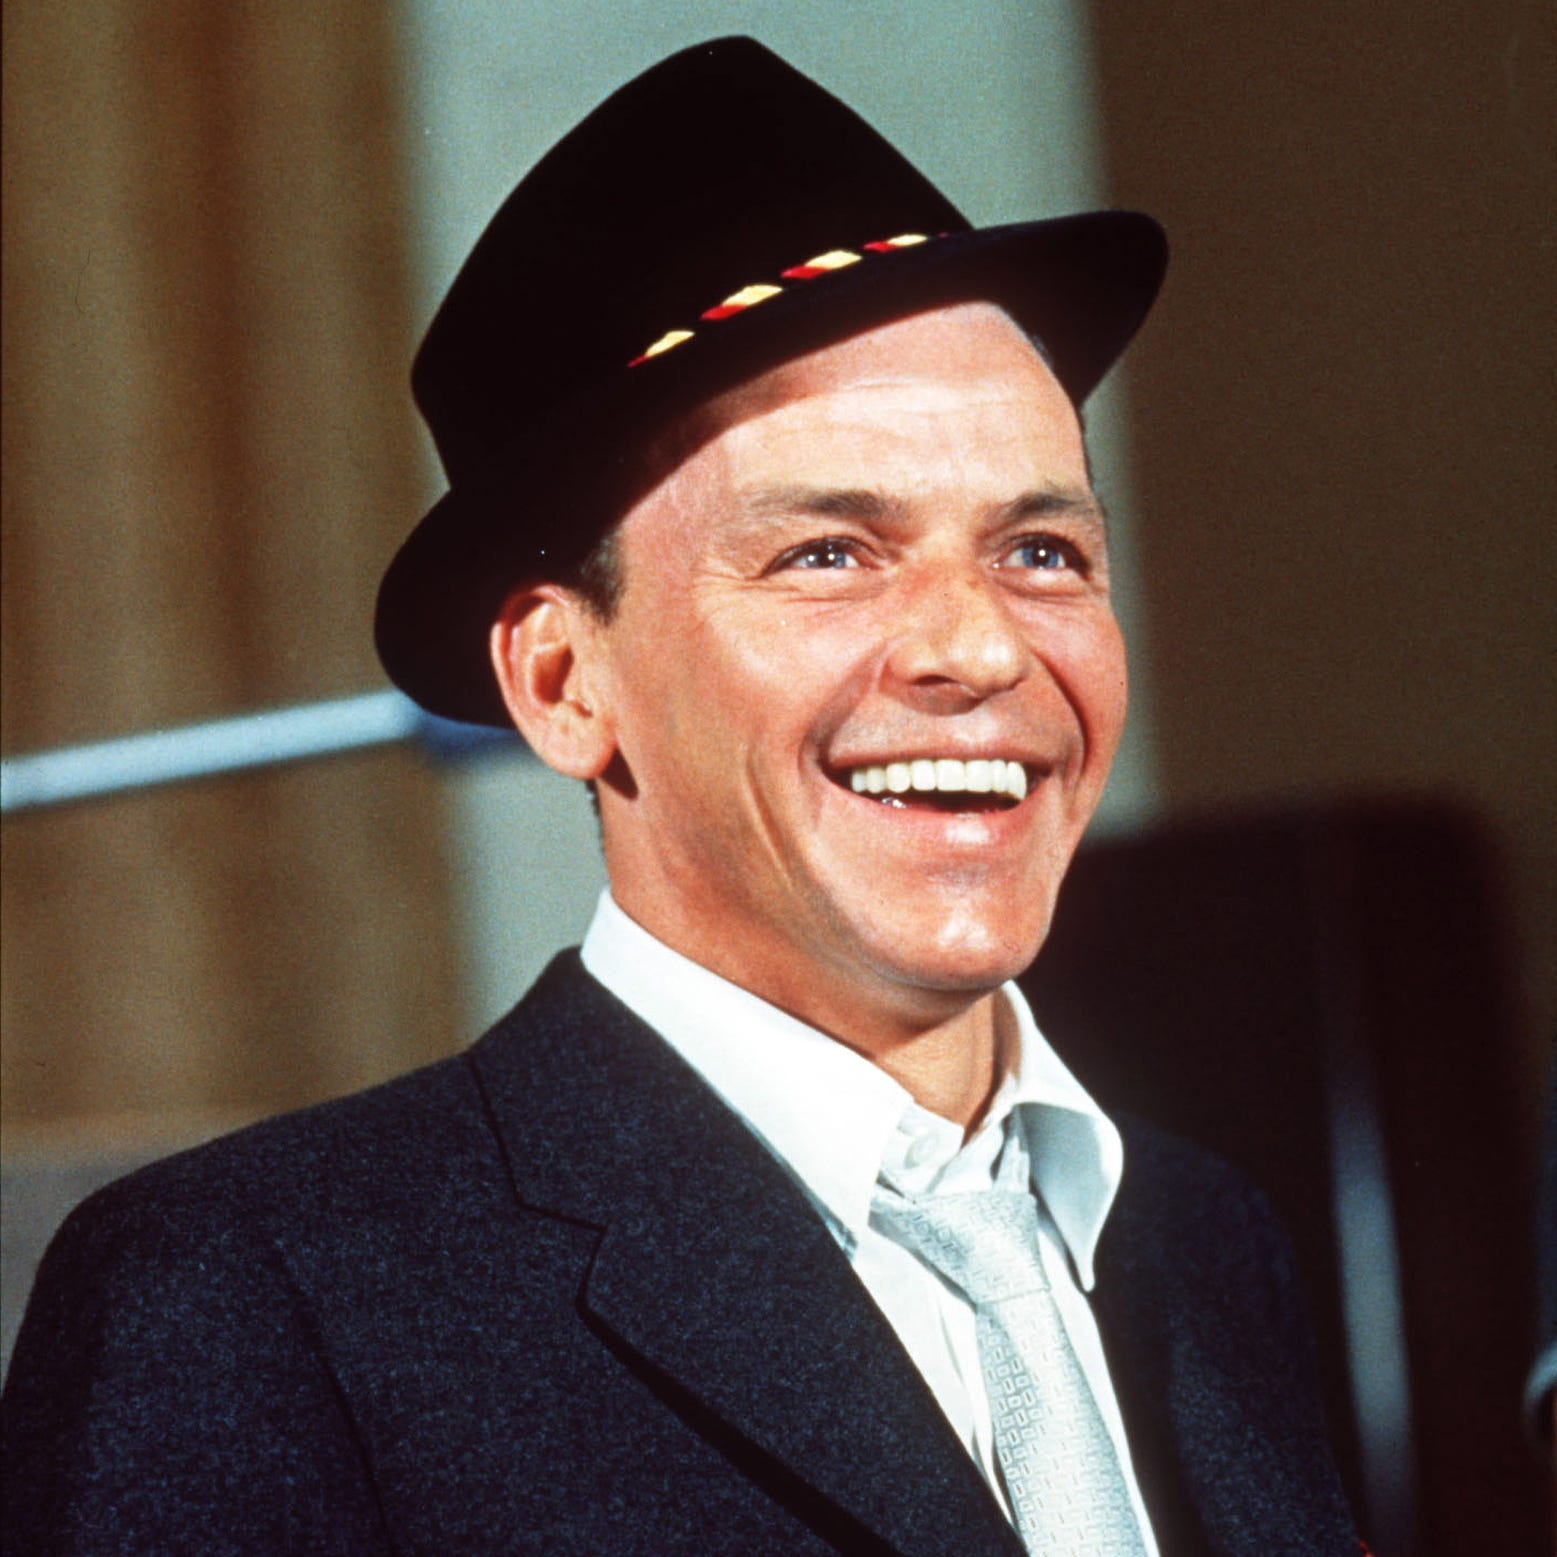 Frank Sinatra-themed bar coming to Printers Alley